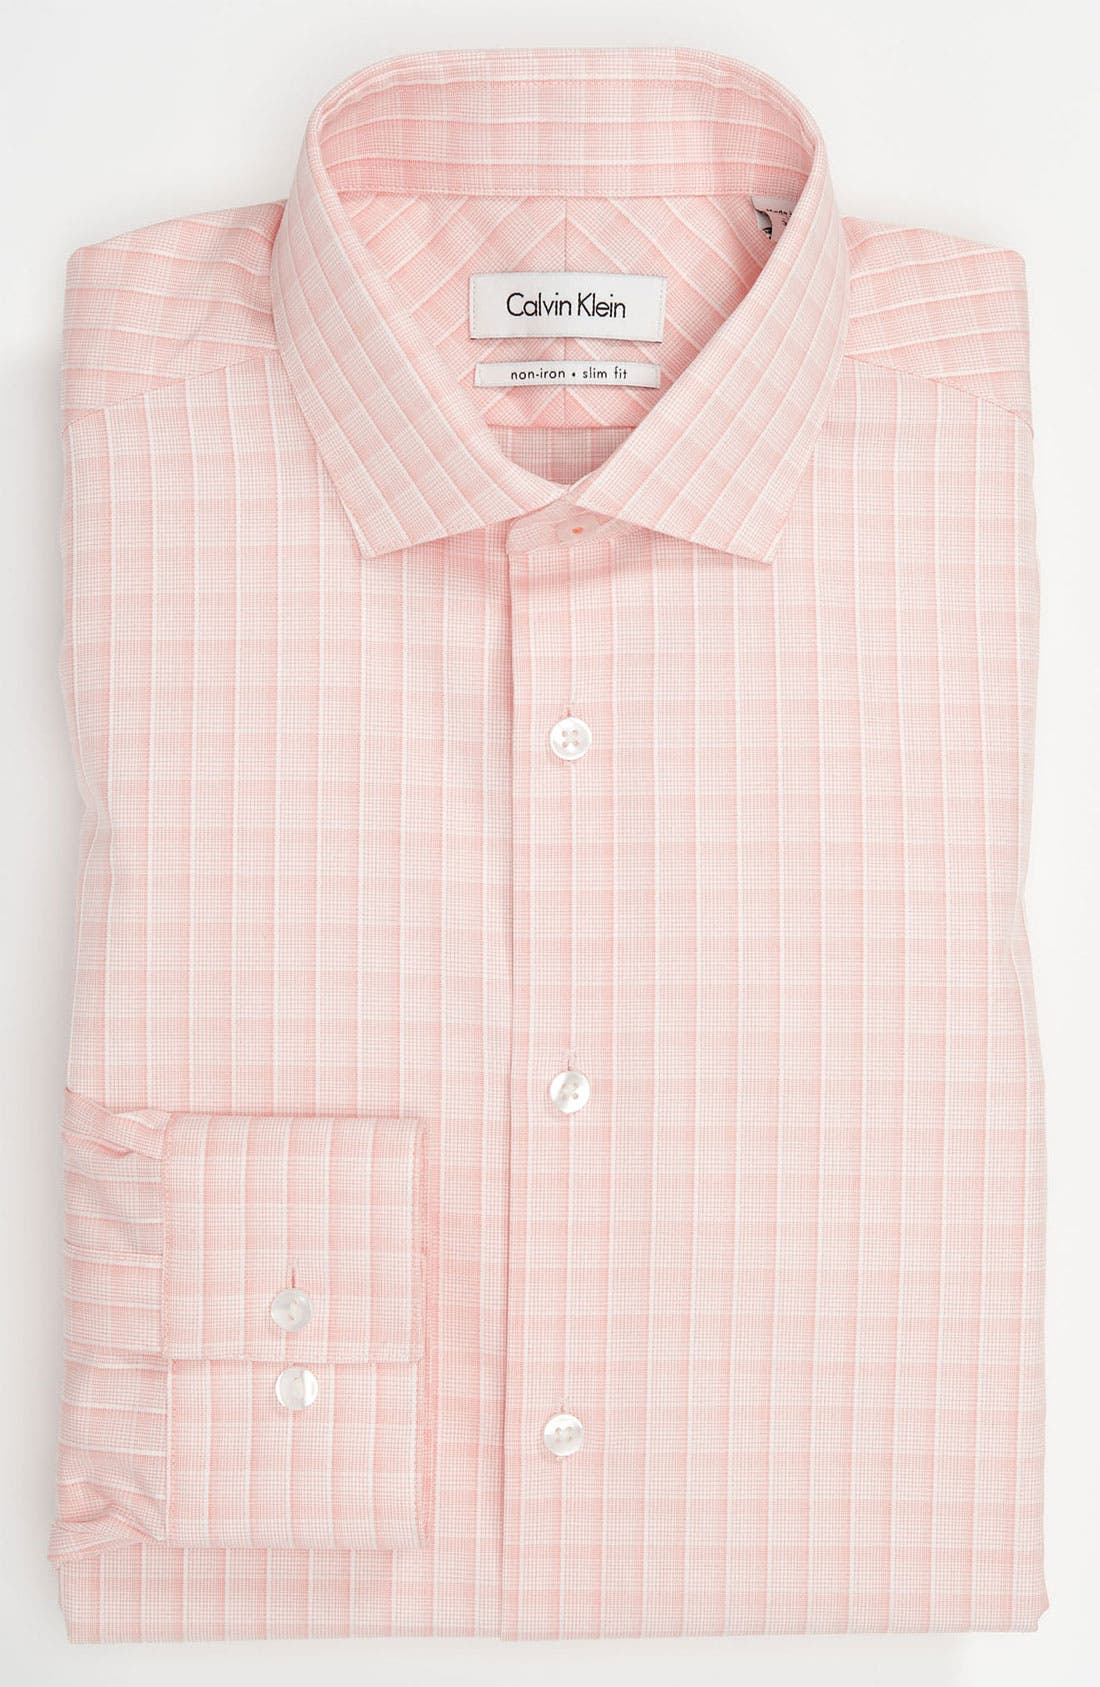 Alternate Image 1 Selected - Calvin Klein 'Montecarlo Check' Slim Fit Dress Shirt